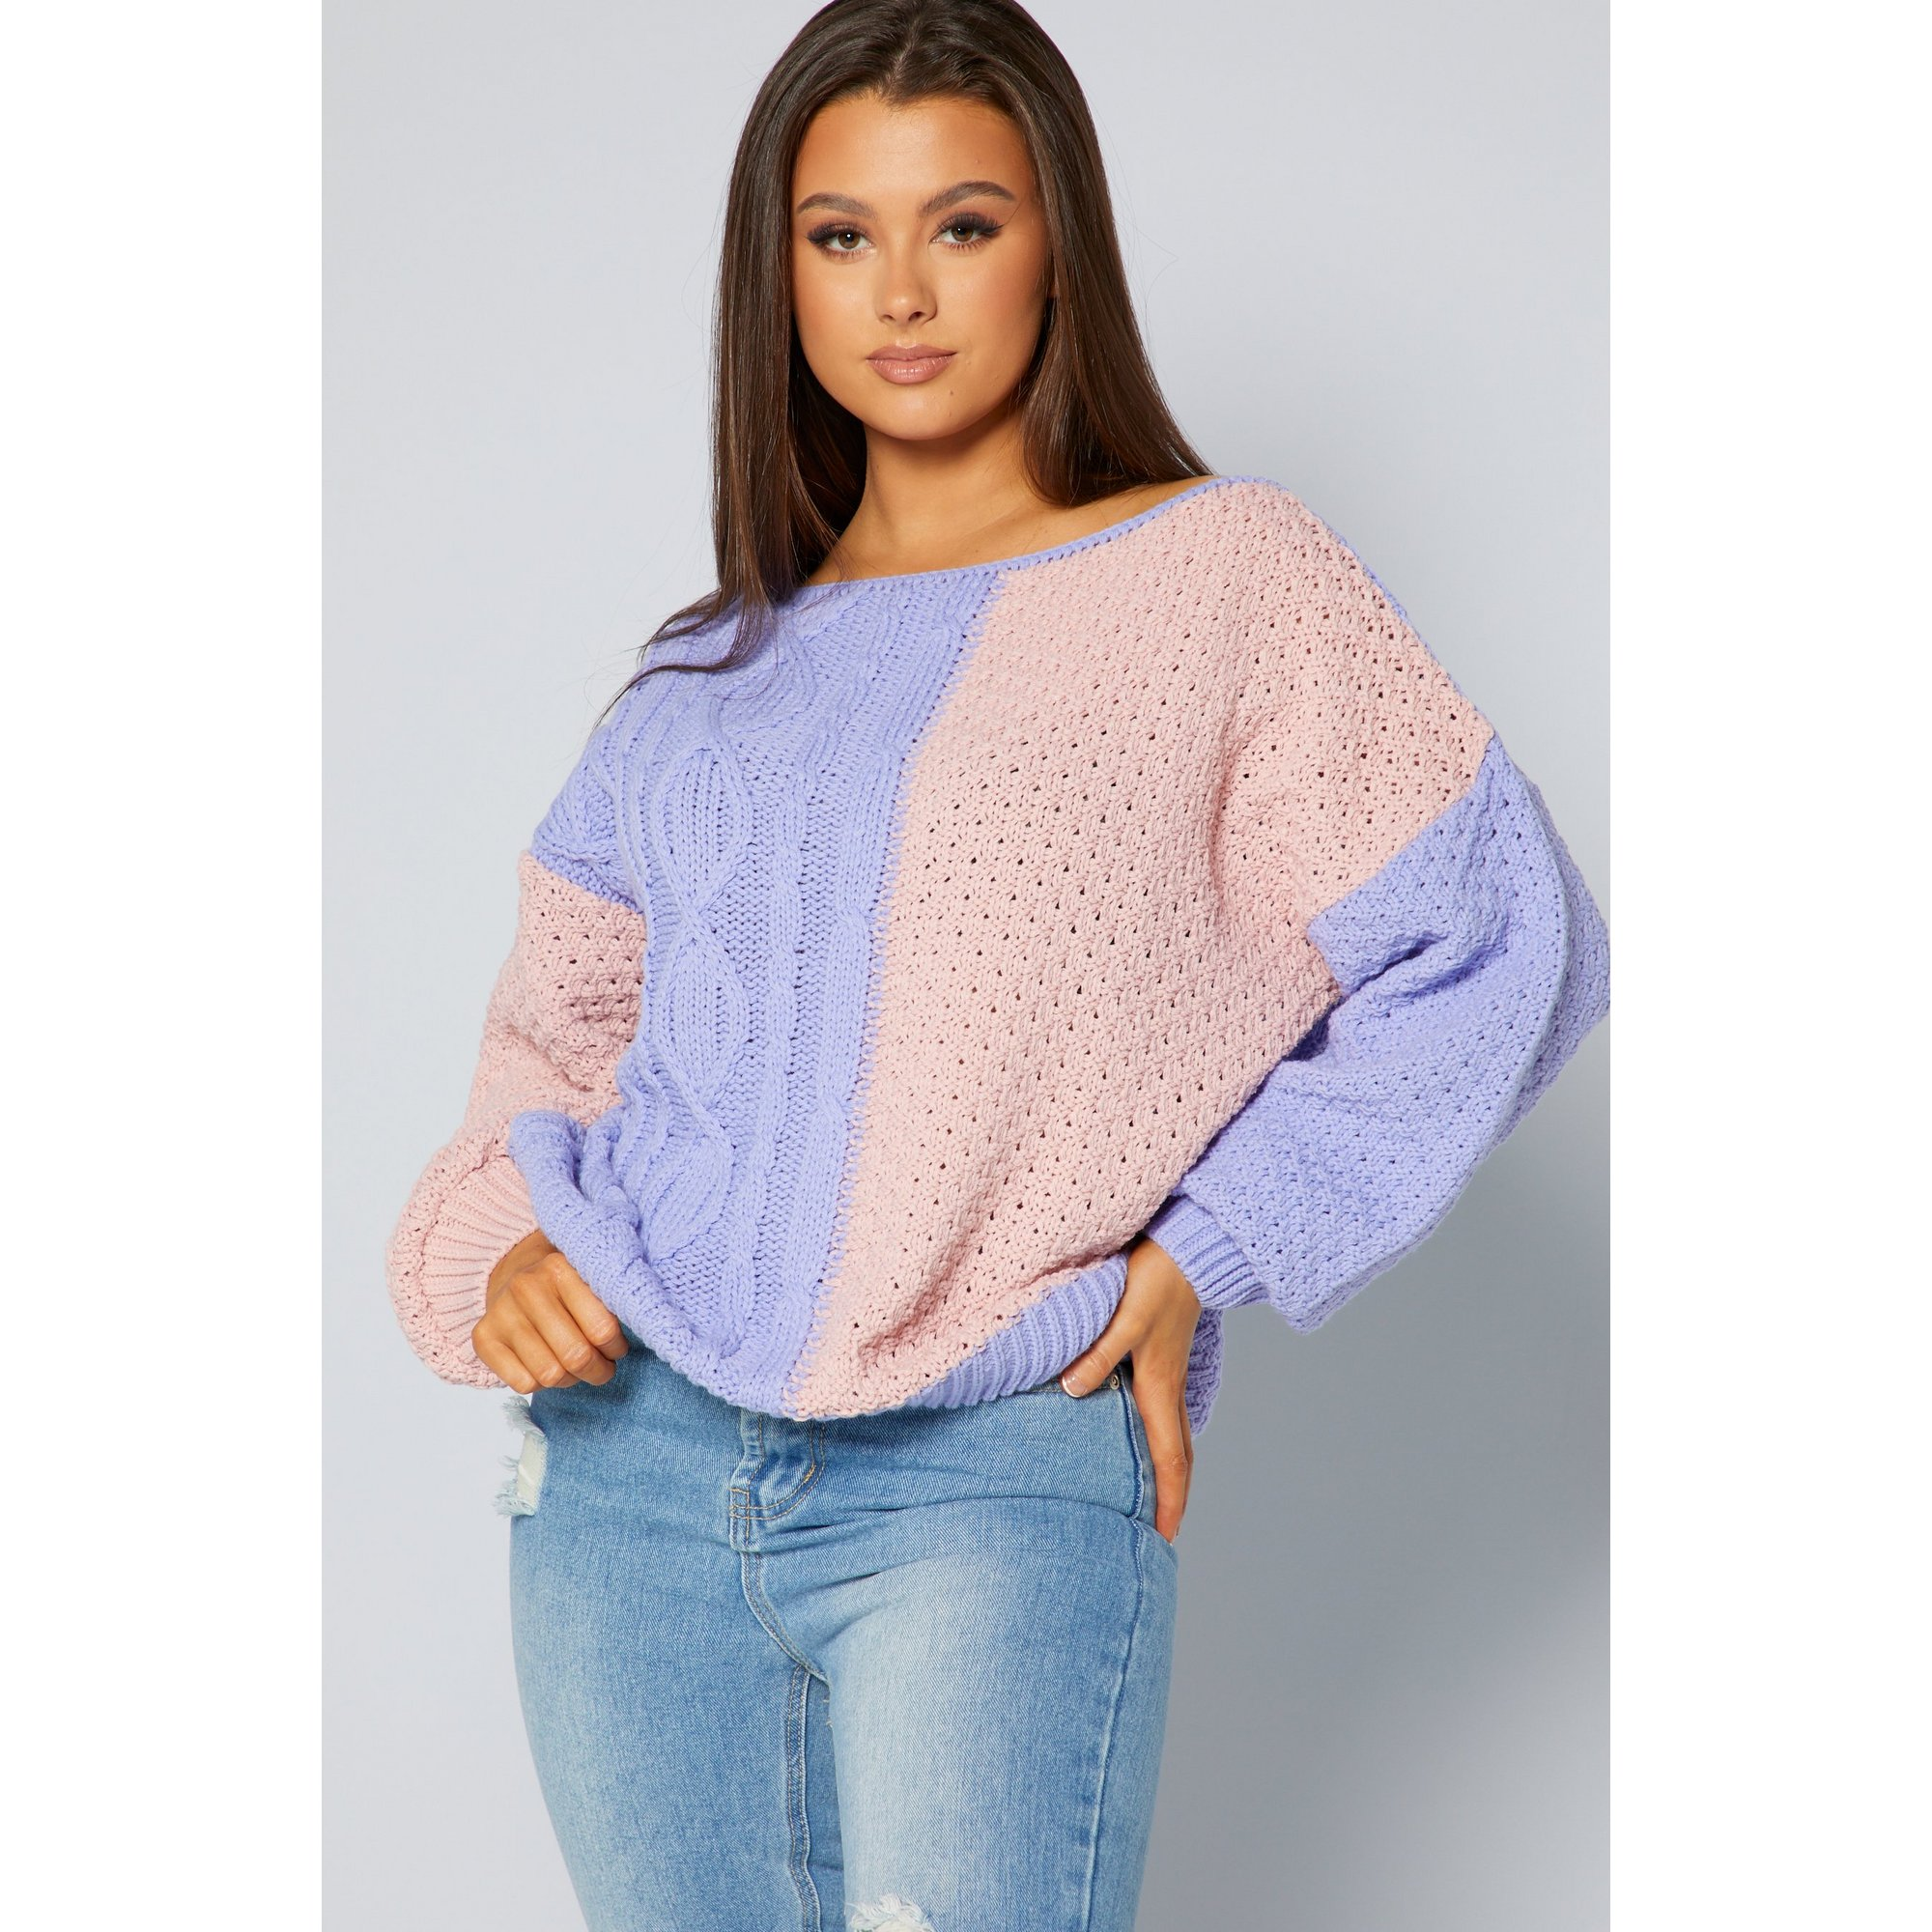 Image of In The Style Jac Jossa Slouch Knitted Longline Jumper